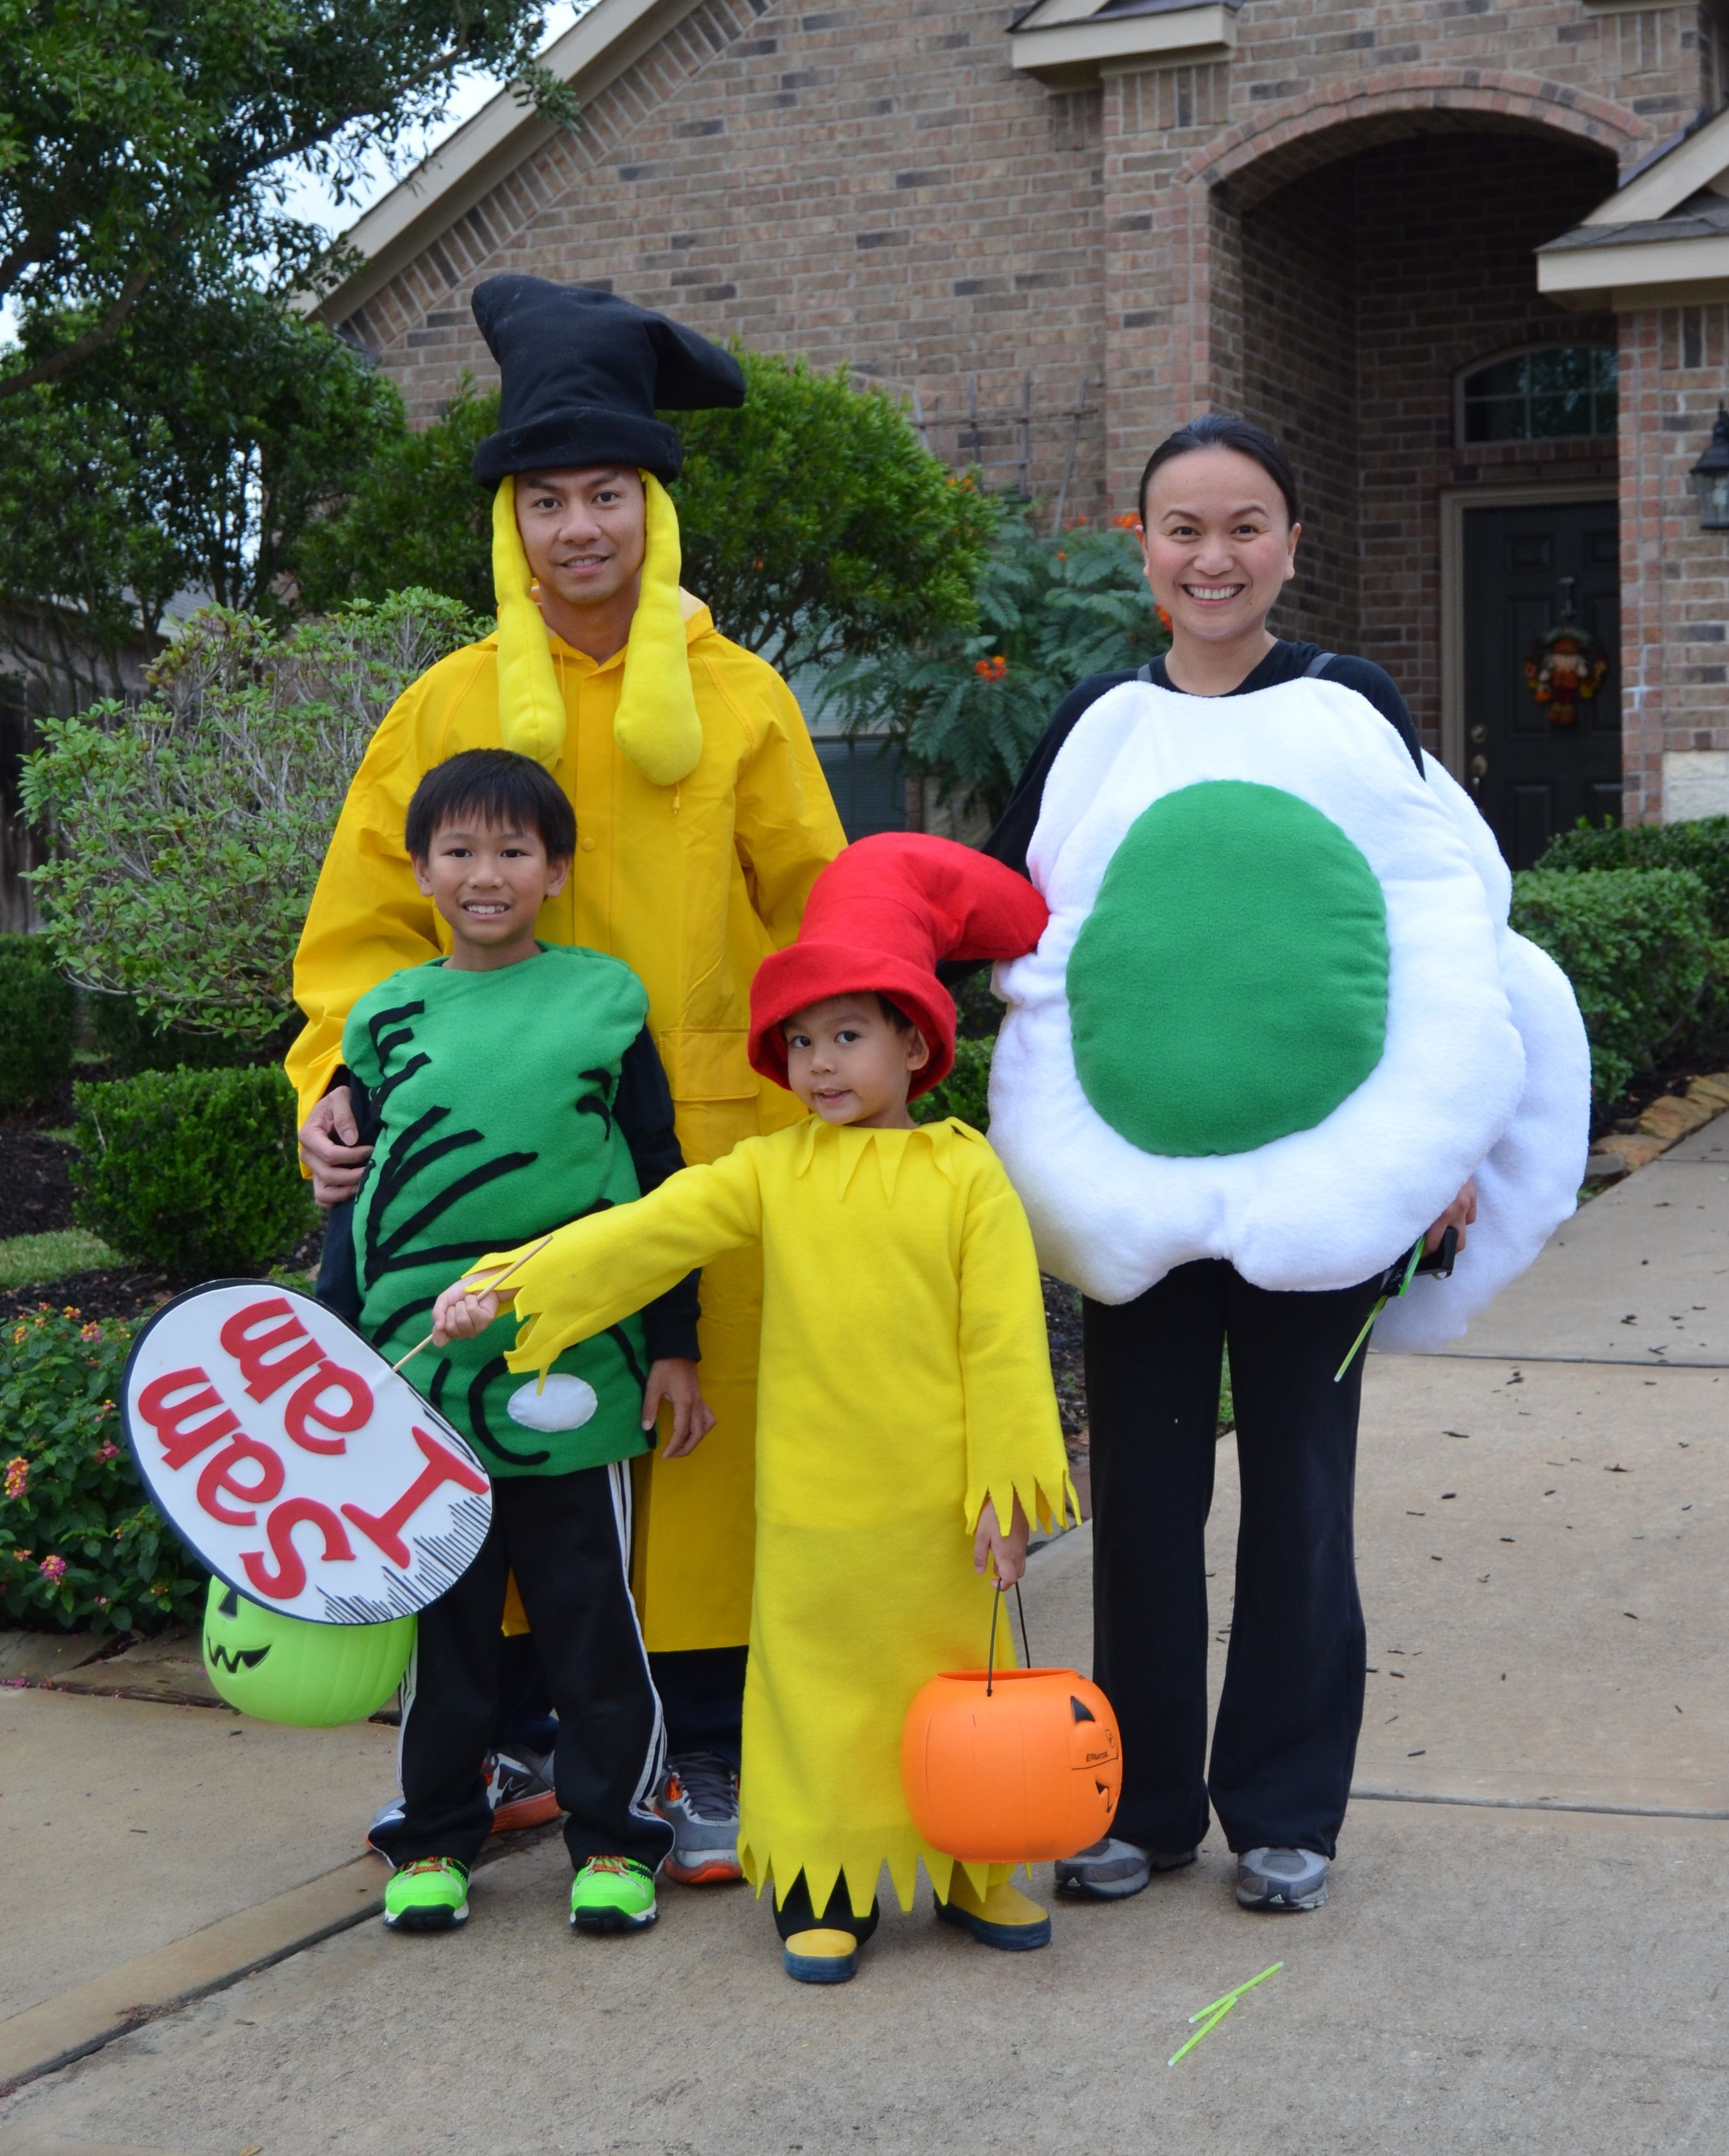 green eggs and ham group costume. sam i am, green eggs, ham and joey